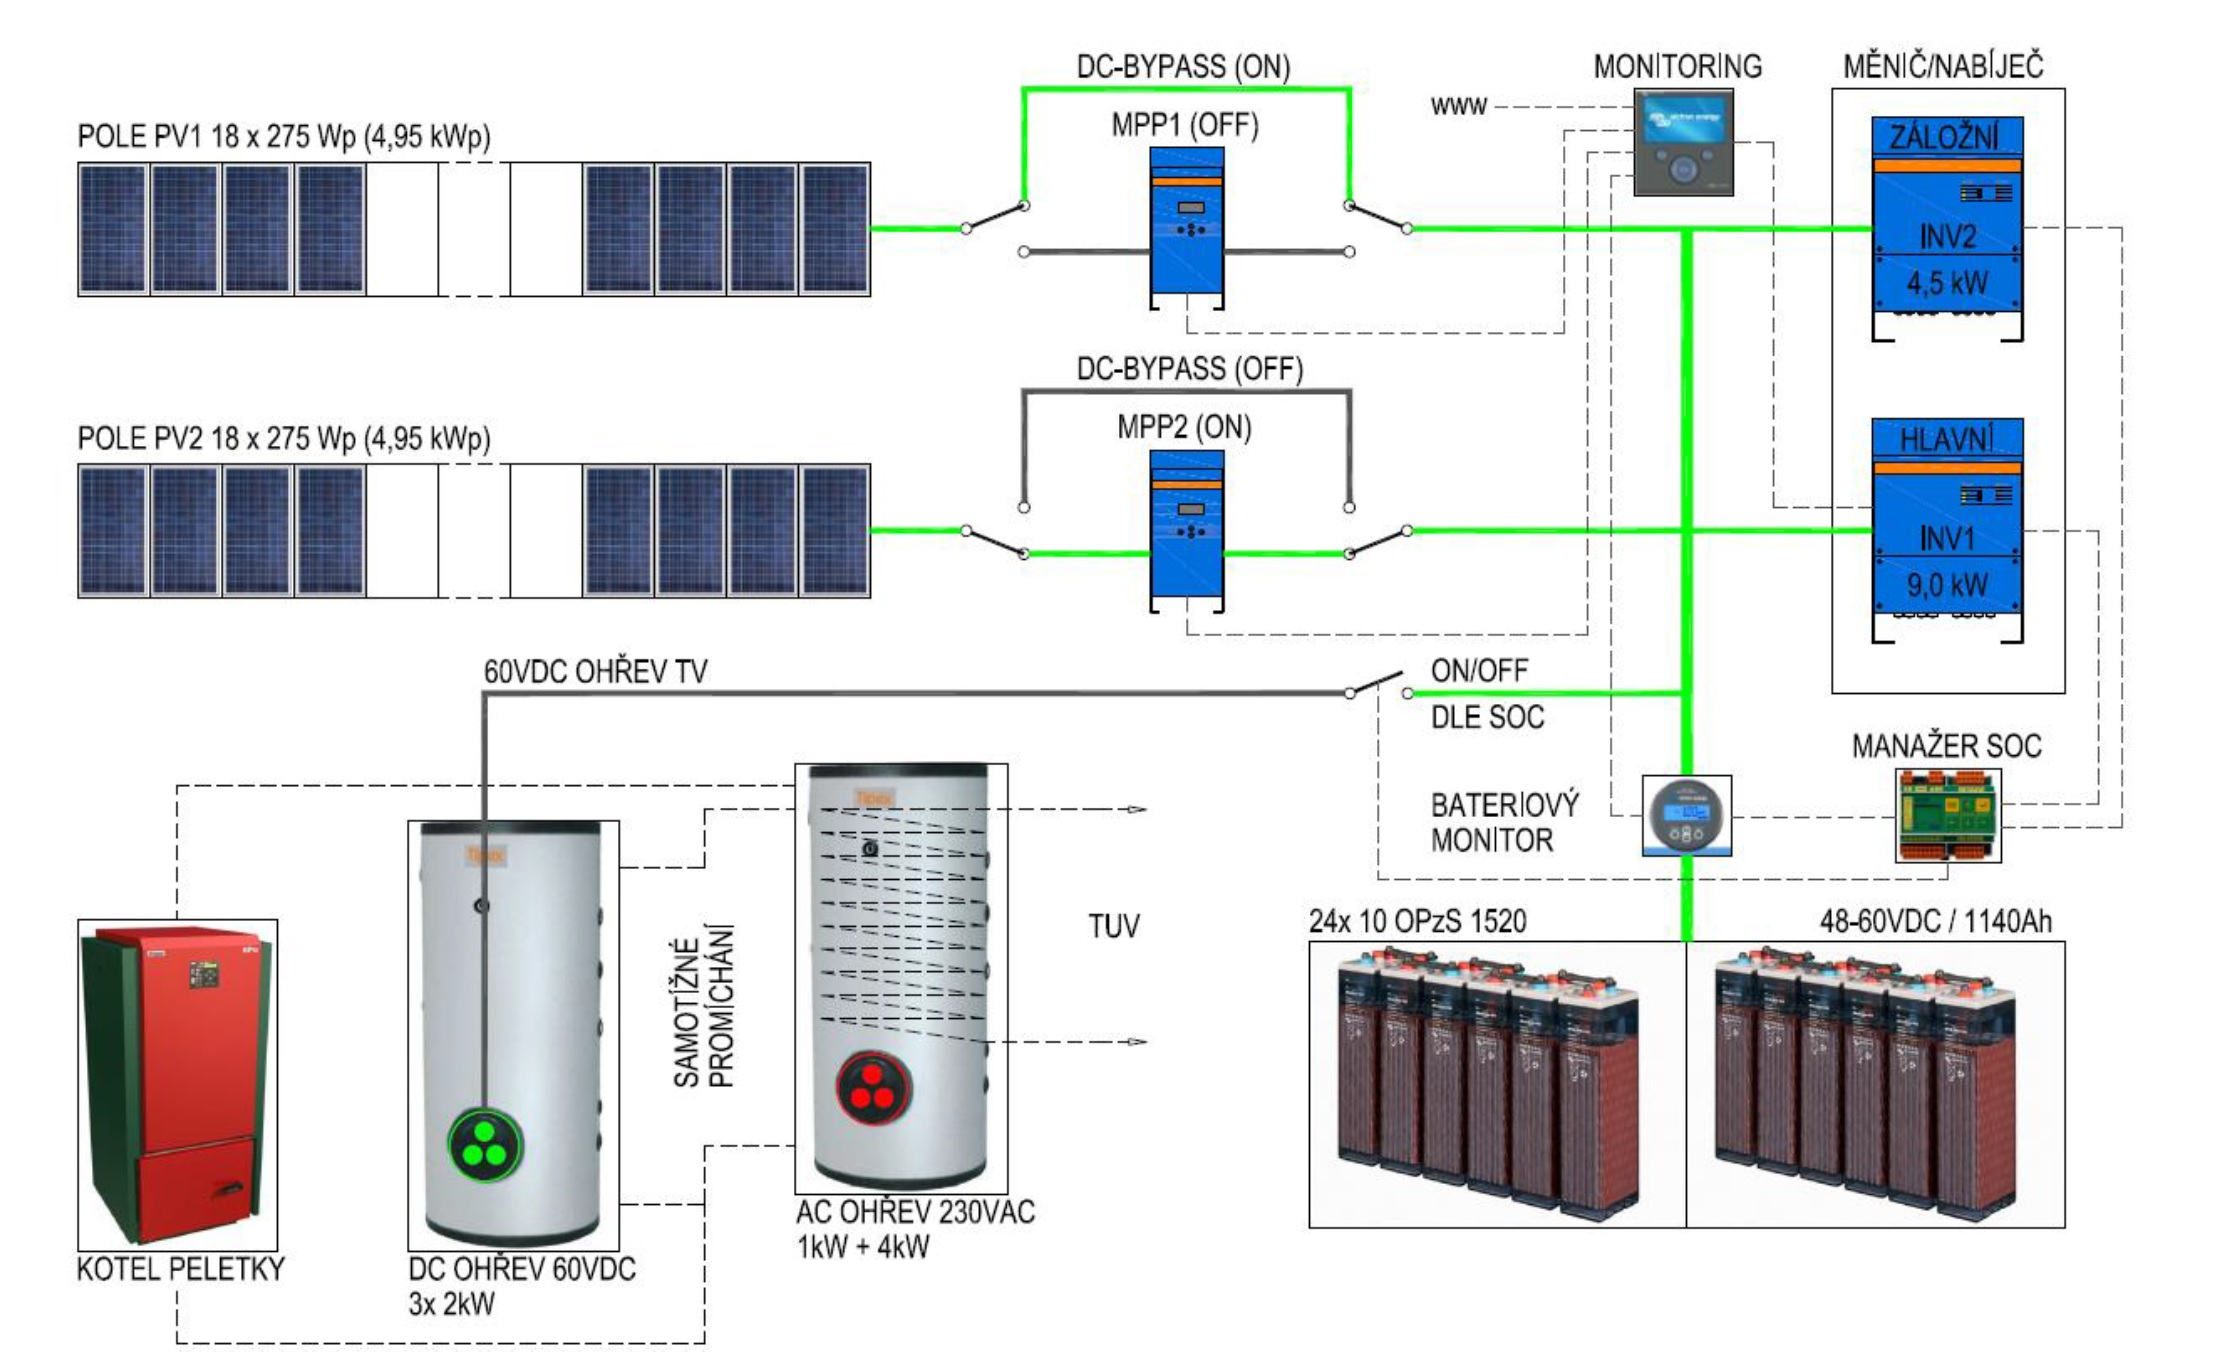 victron inverter wiring diagram Collection-Main DC circuits of the PV off grid system 1-o